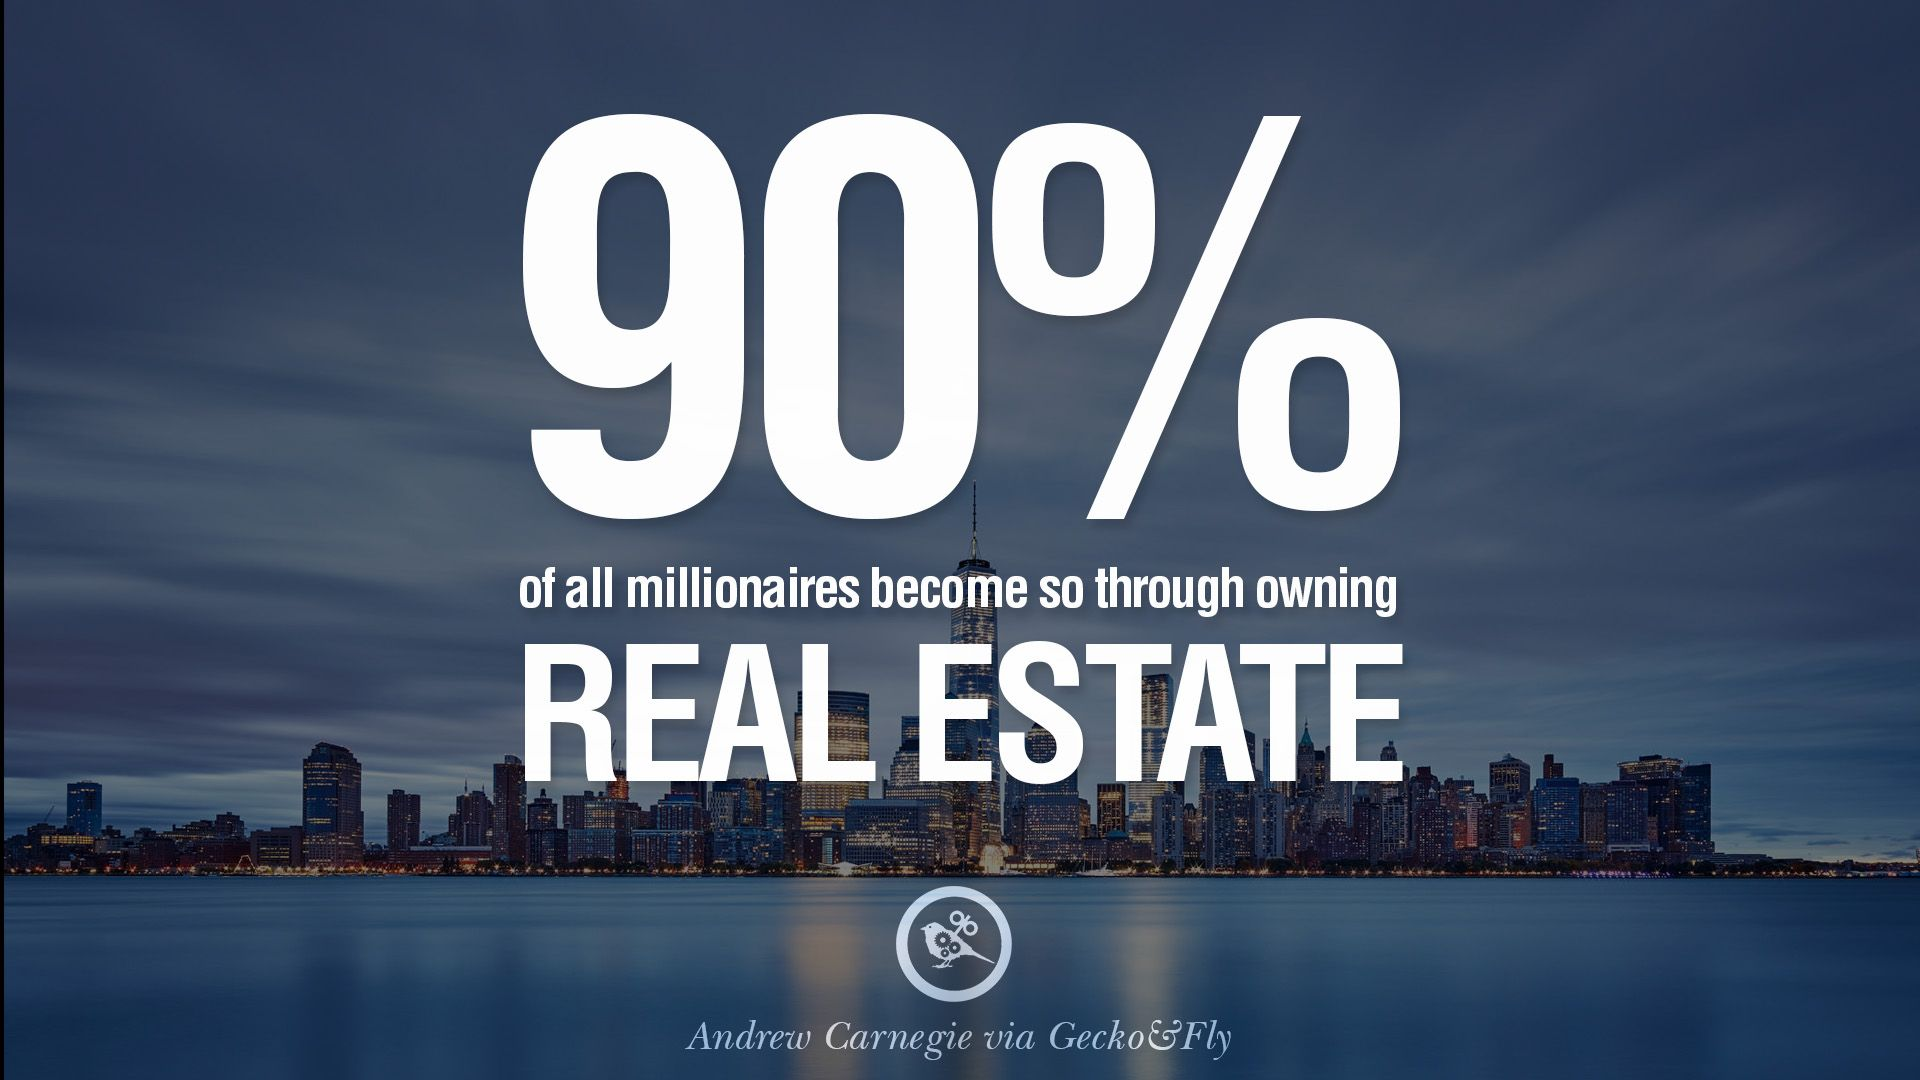 Real estate investment 71